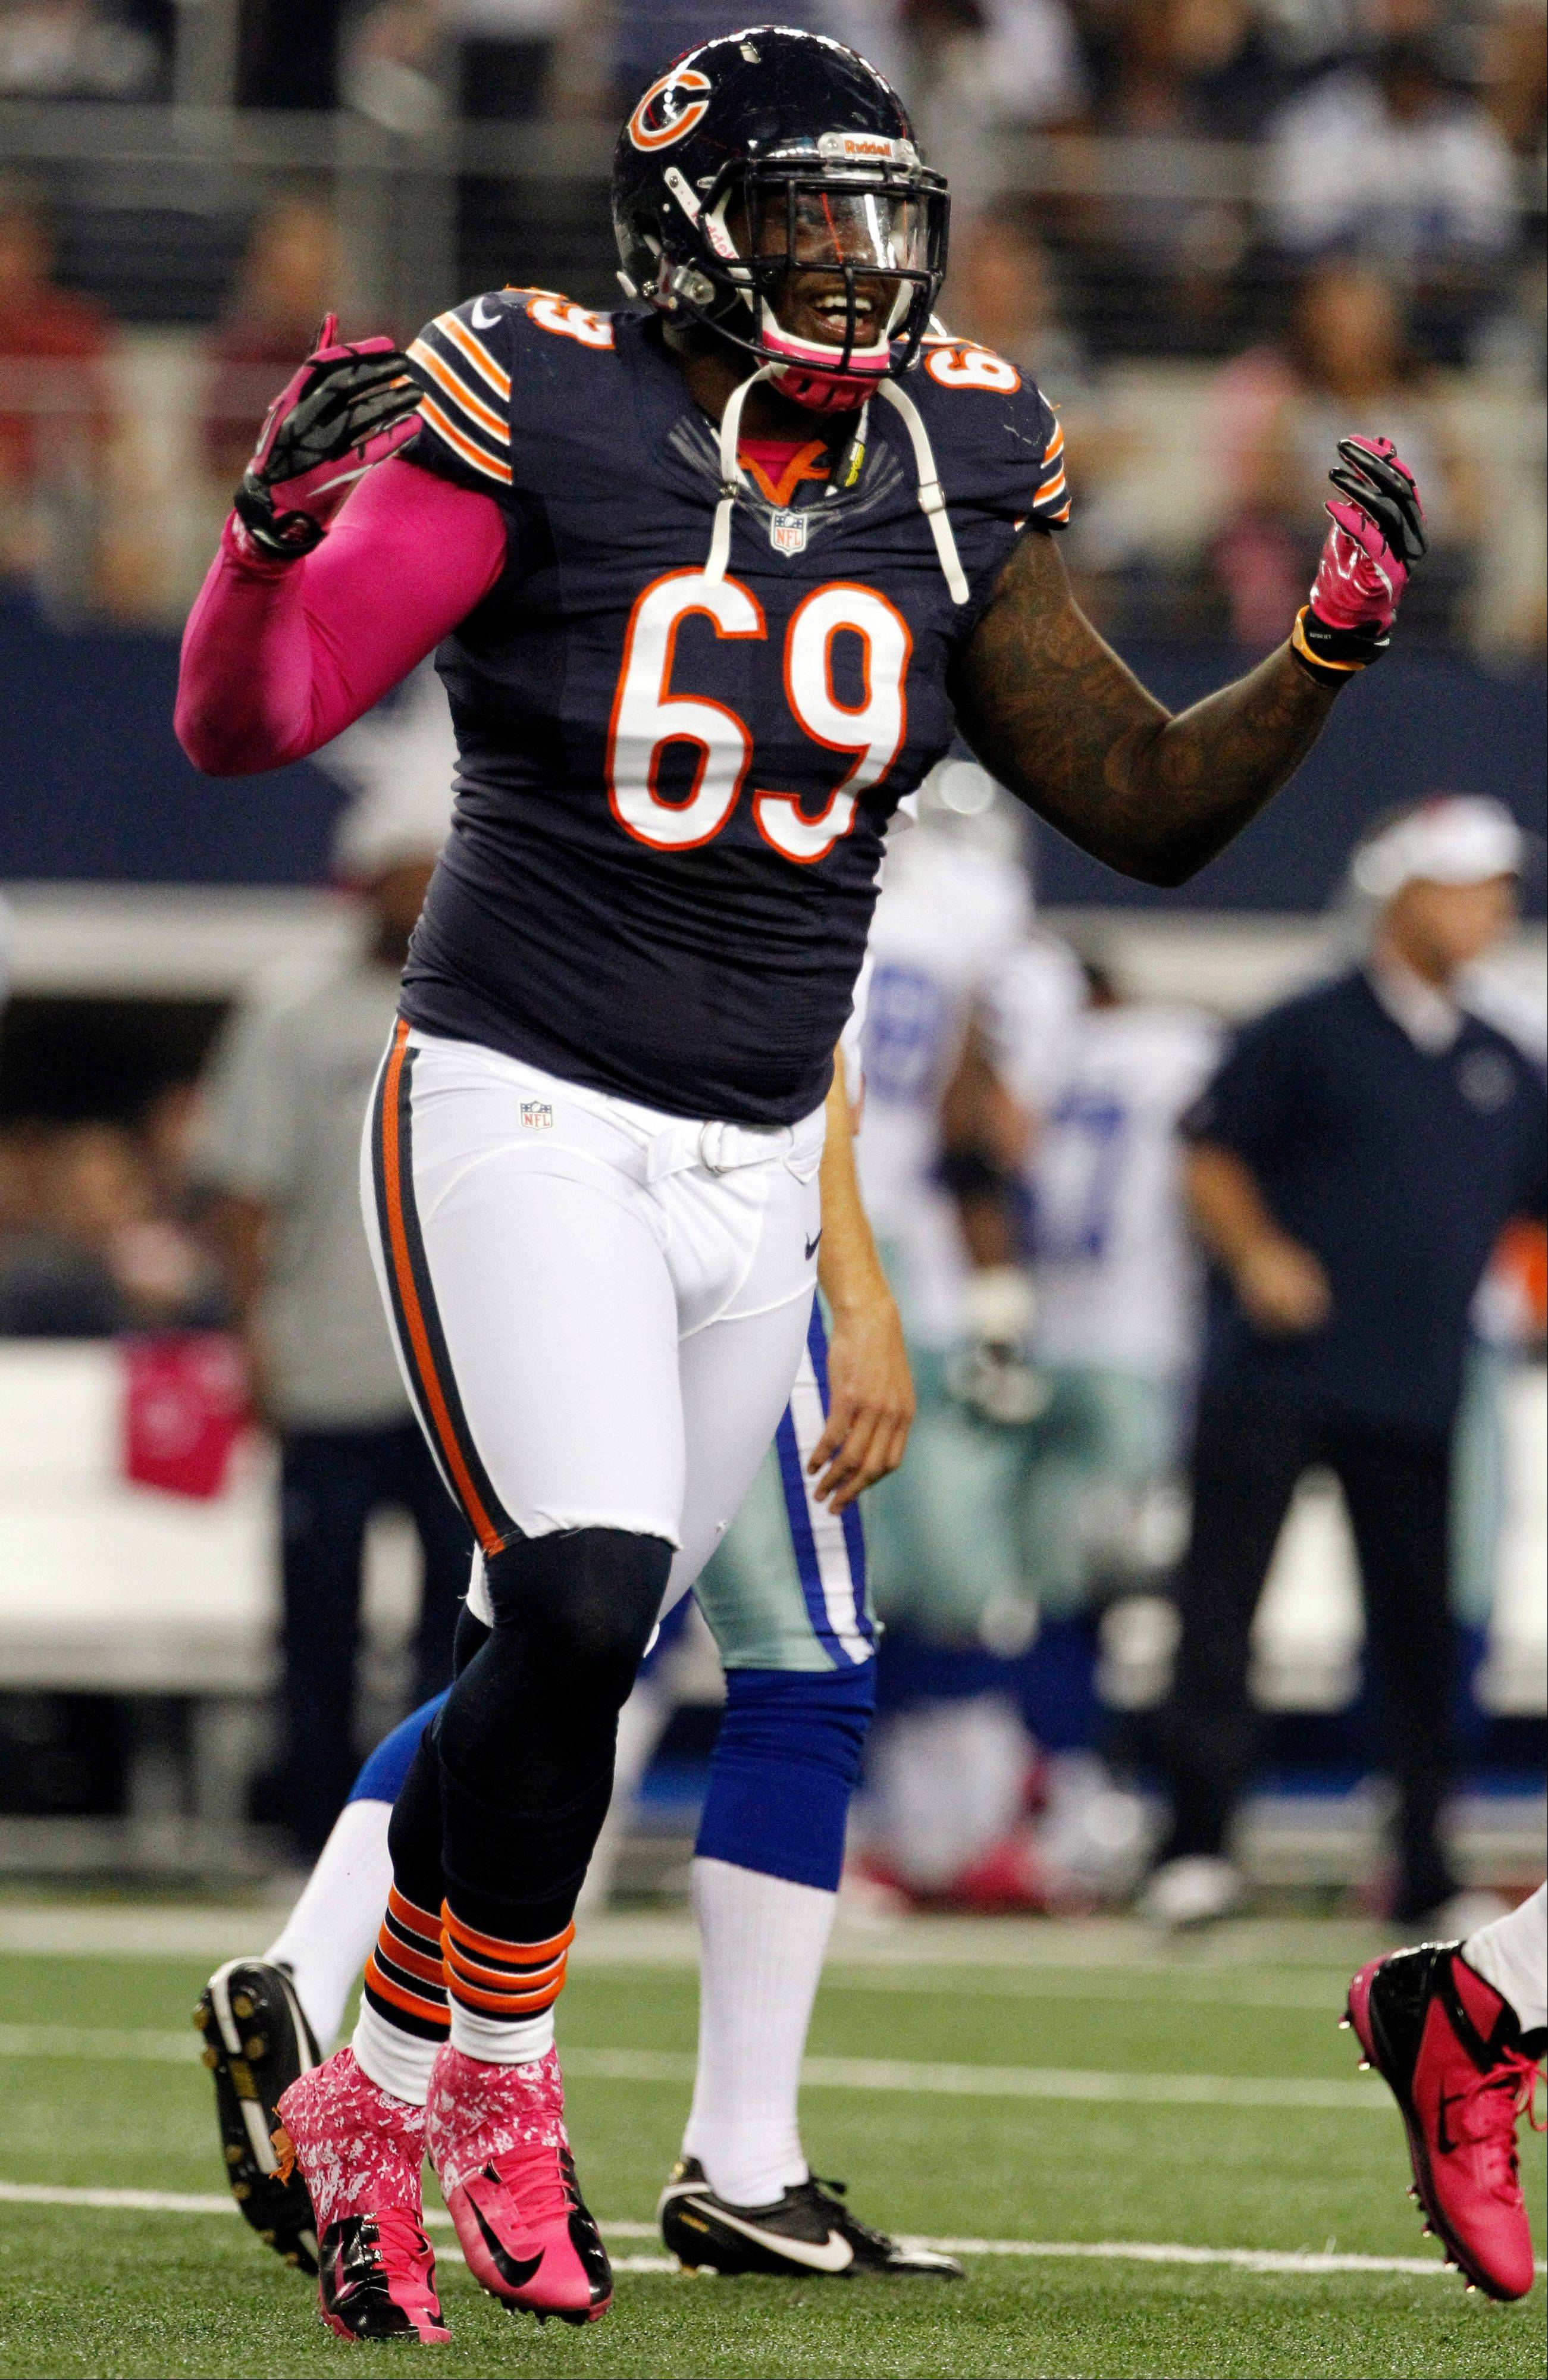 Bears' DT Henry Melton arrested in Texas bar dispute